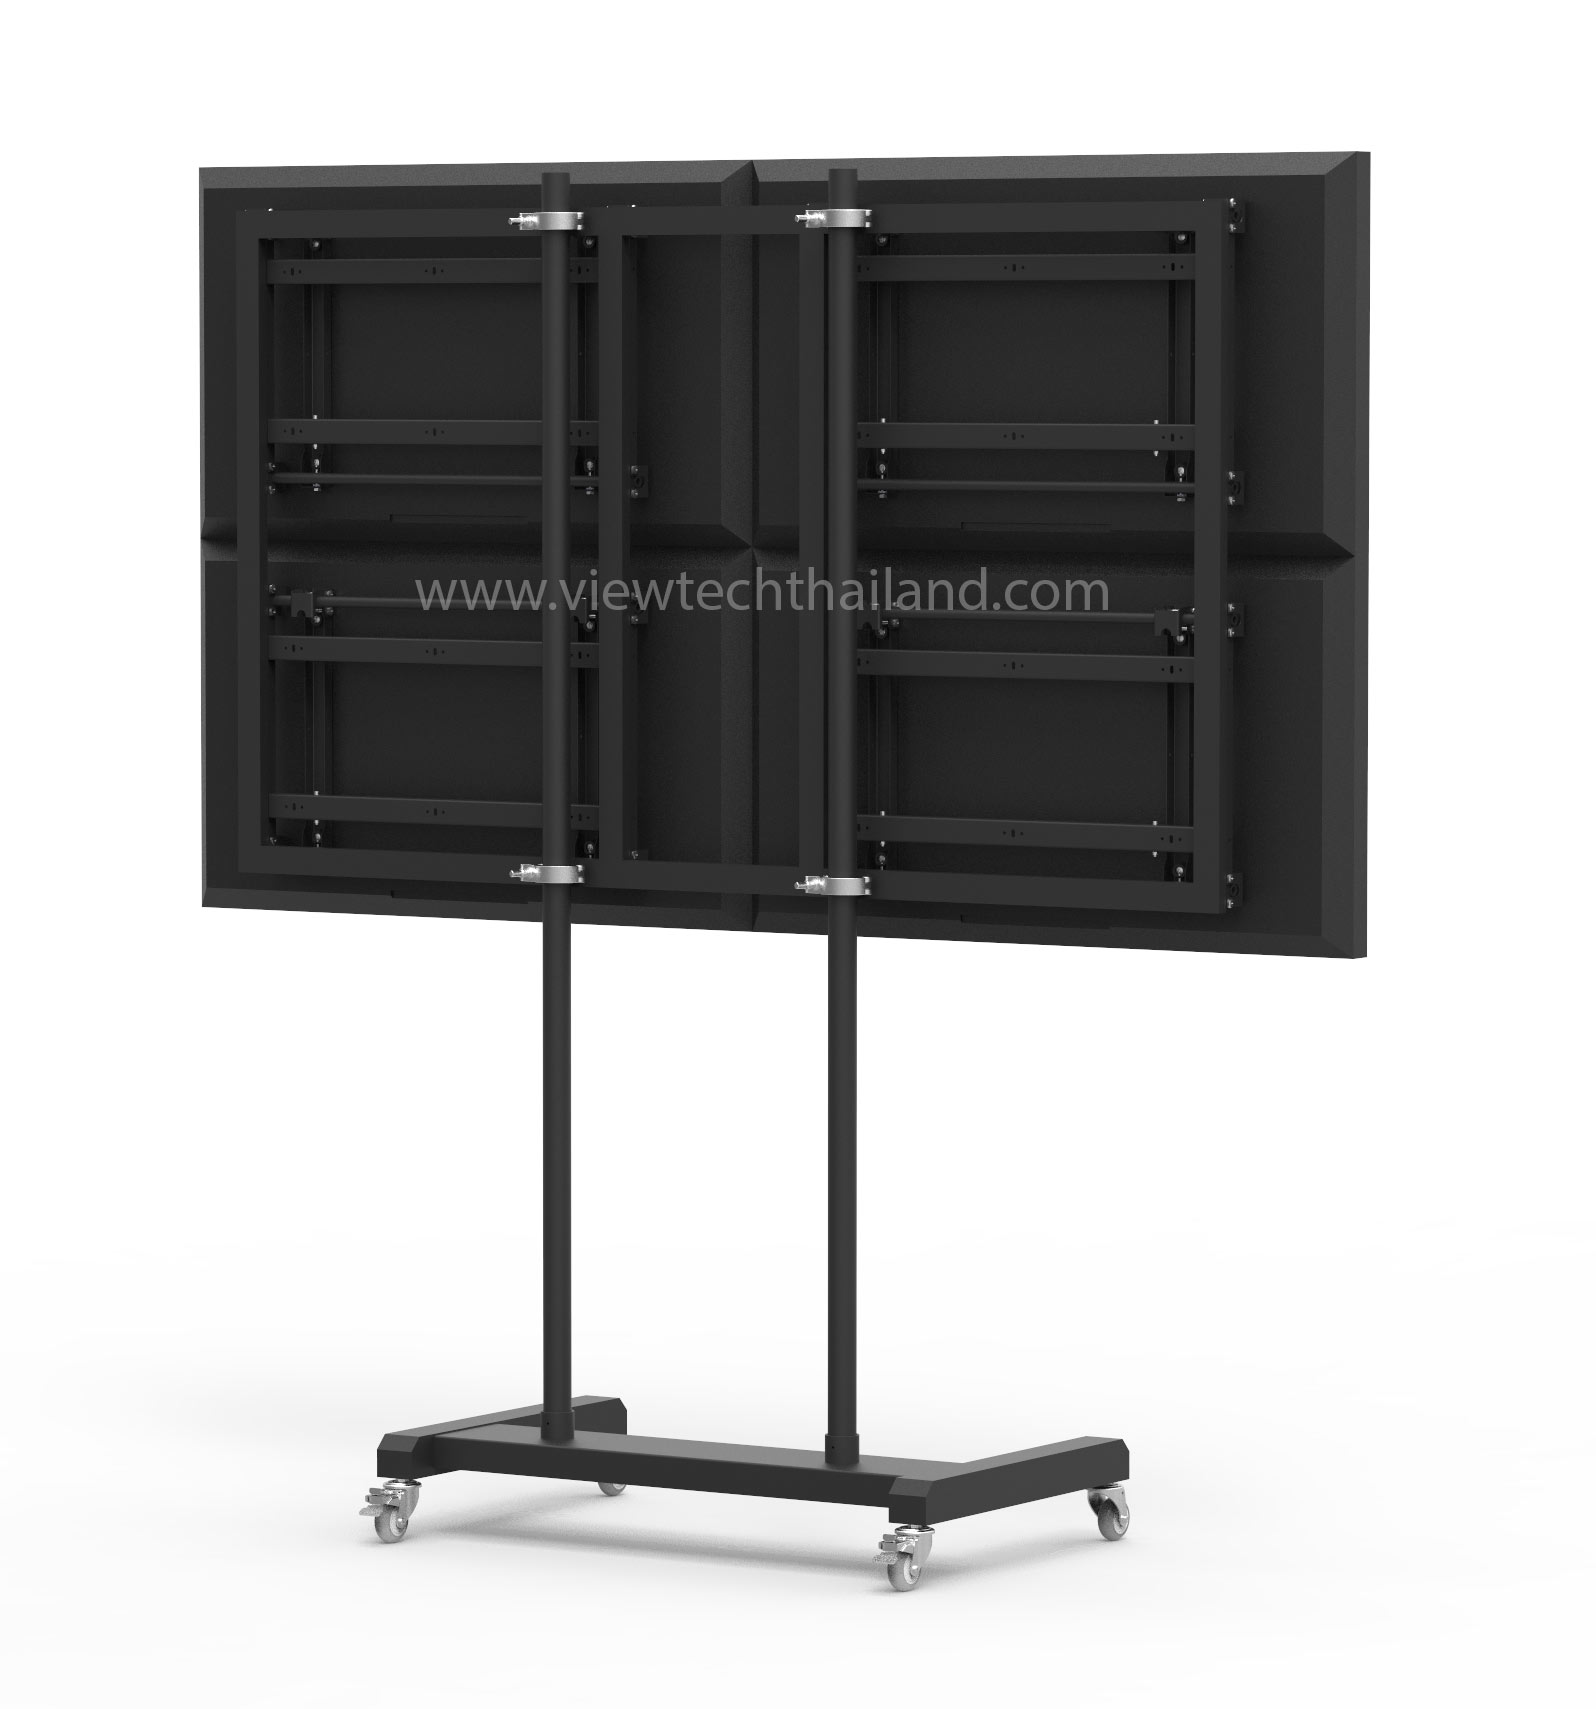 video wall, ขาตั้งทีวี, led stands